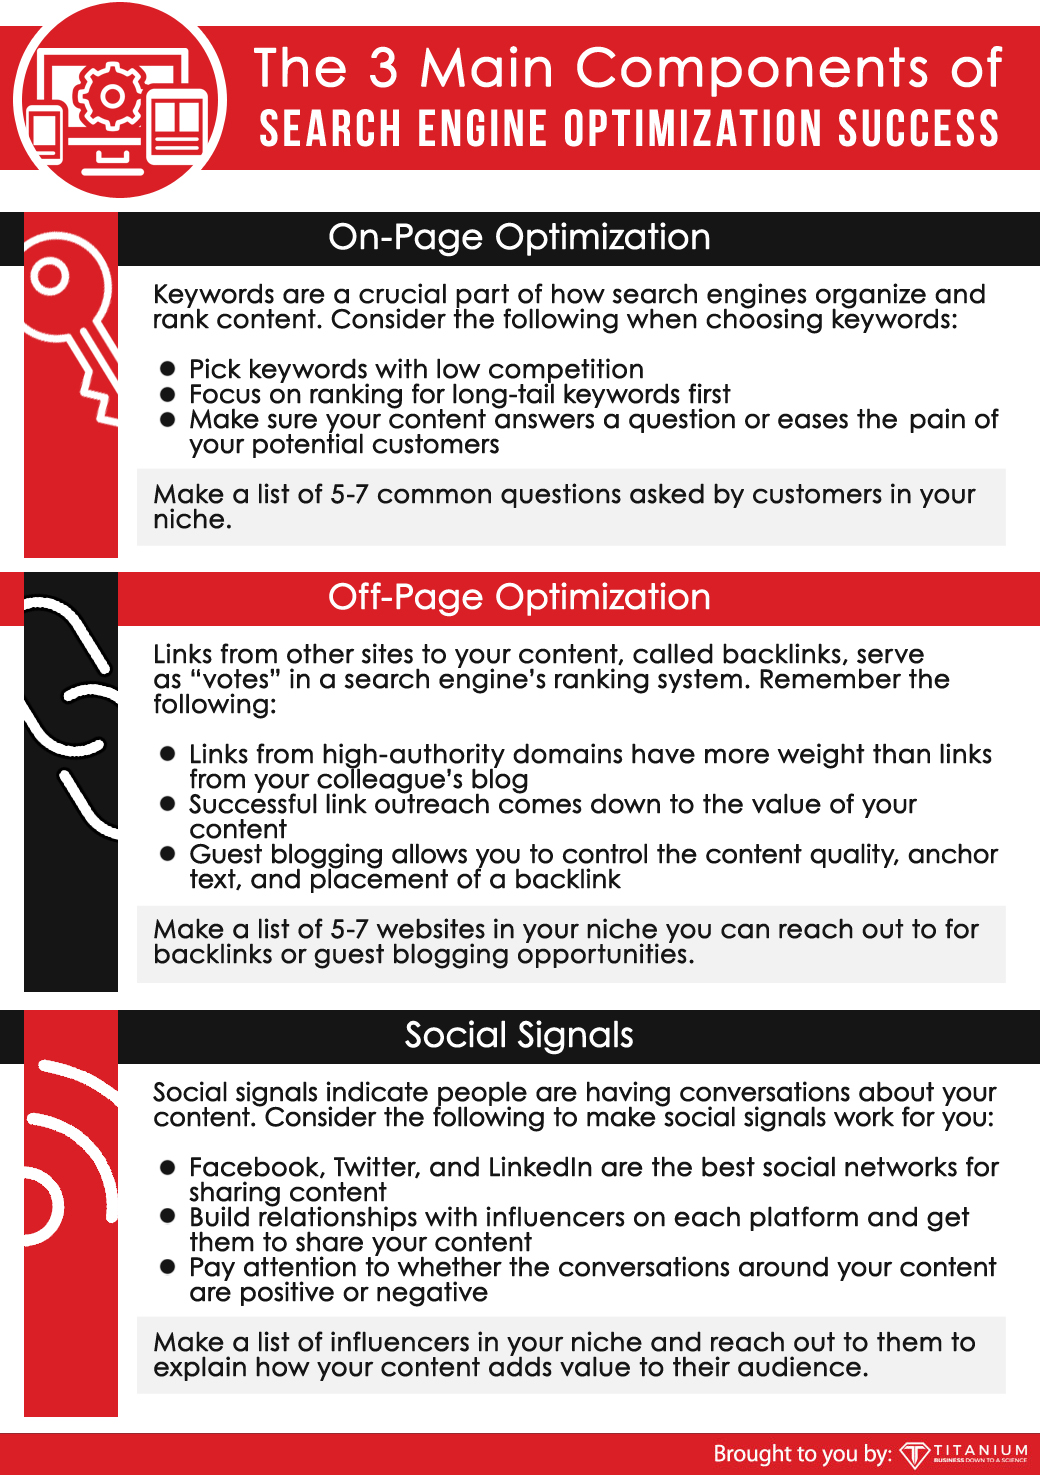 the components of SEO